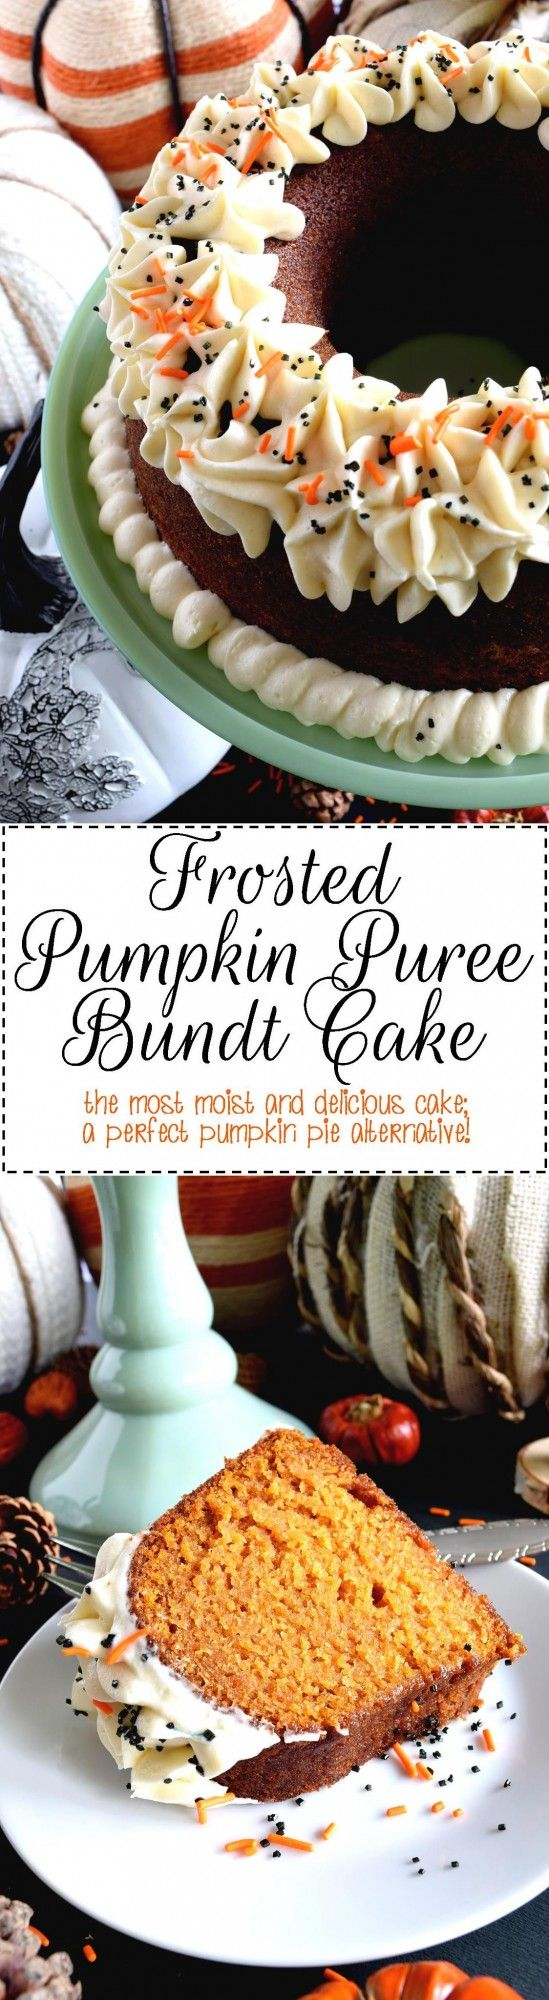 Frosted Pumpkin Puree Bundt Cake - Super moist, and deliciously pumpkin flavoured, Frosted Pumpkin Puree Bundt Cake is a perfect autumn dessert.  Pair this cake with your favourite hot beverage for a delightful chilly afternoon indulgence!